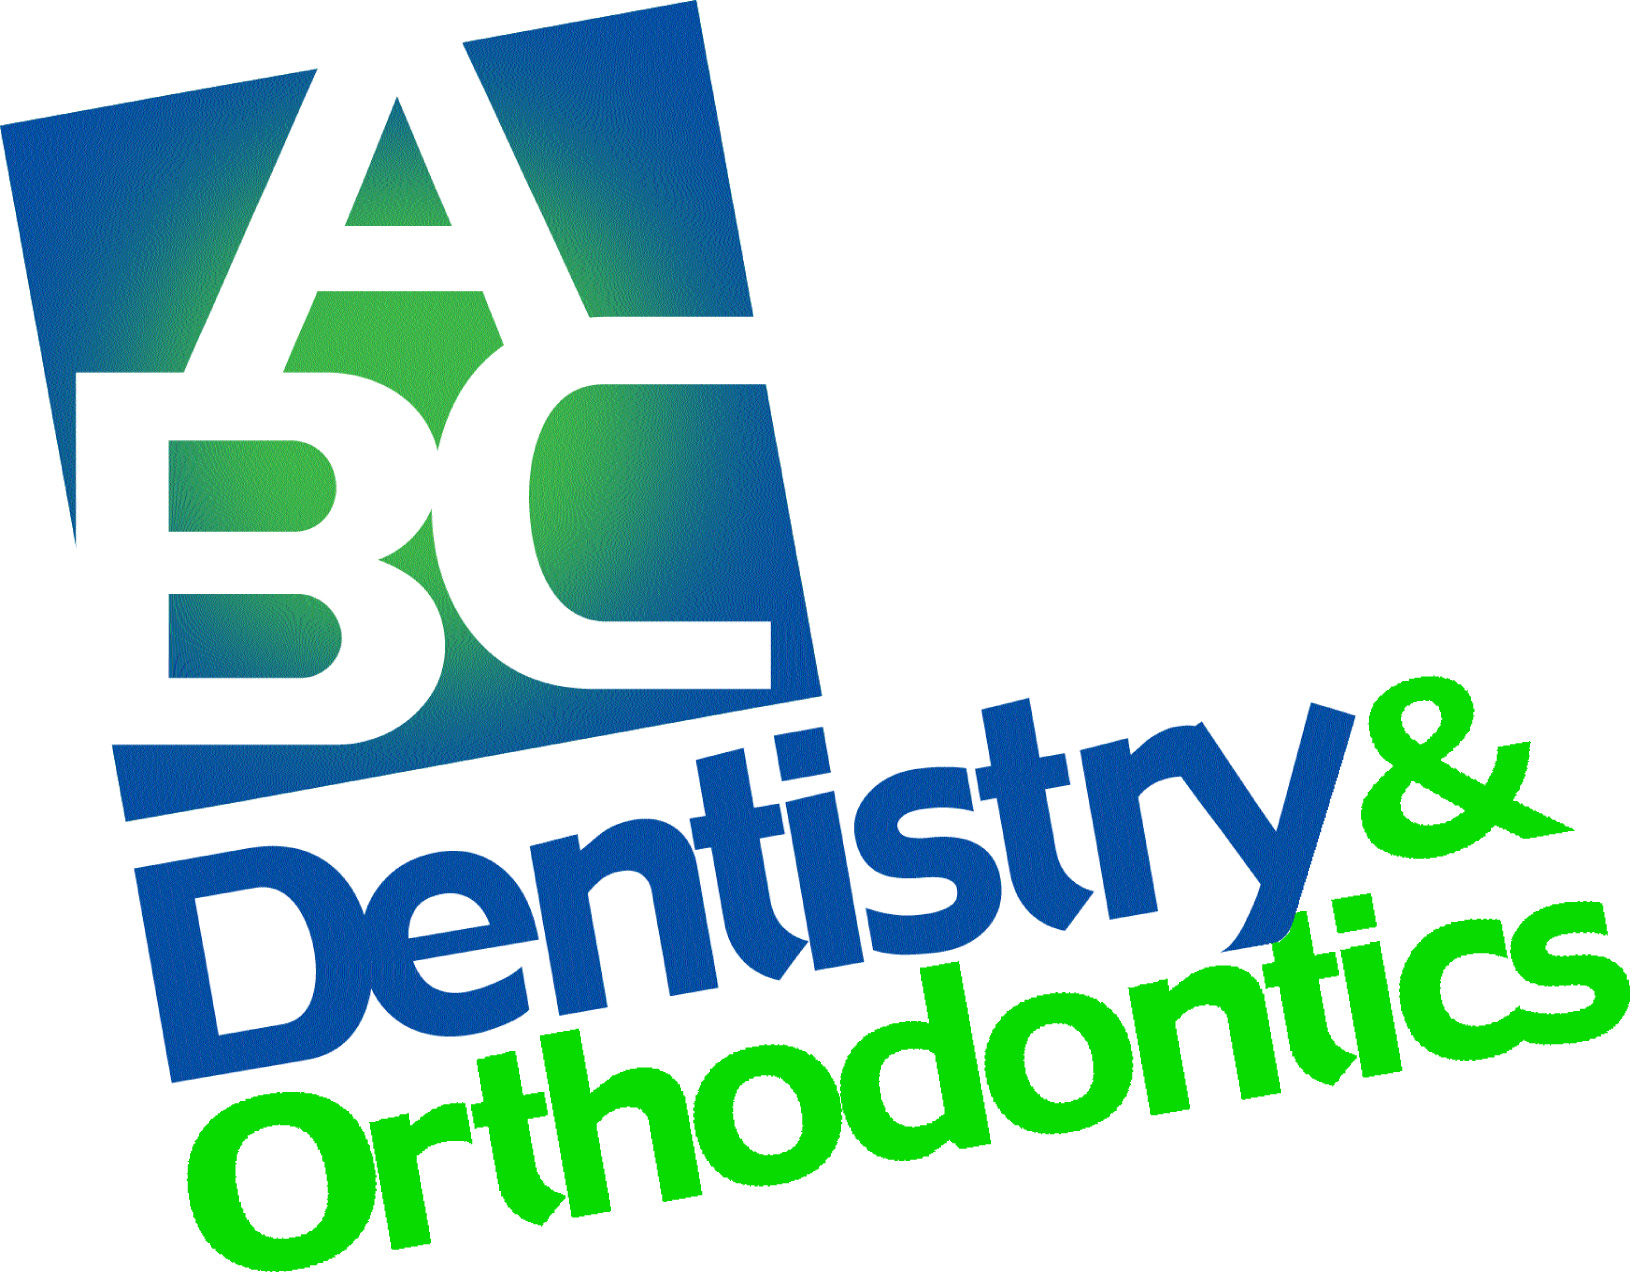 ABC Dentistry & Orthodontics Company Logo